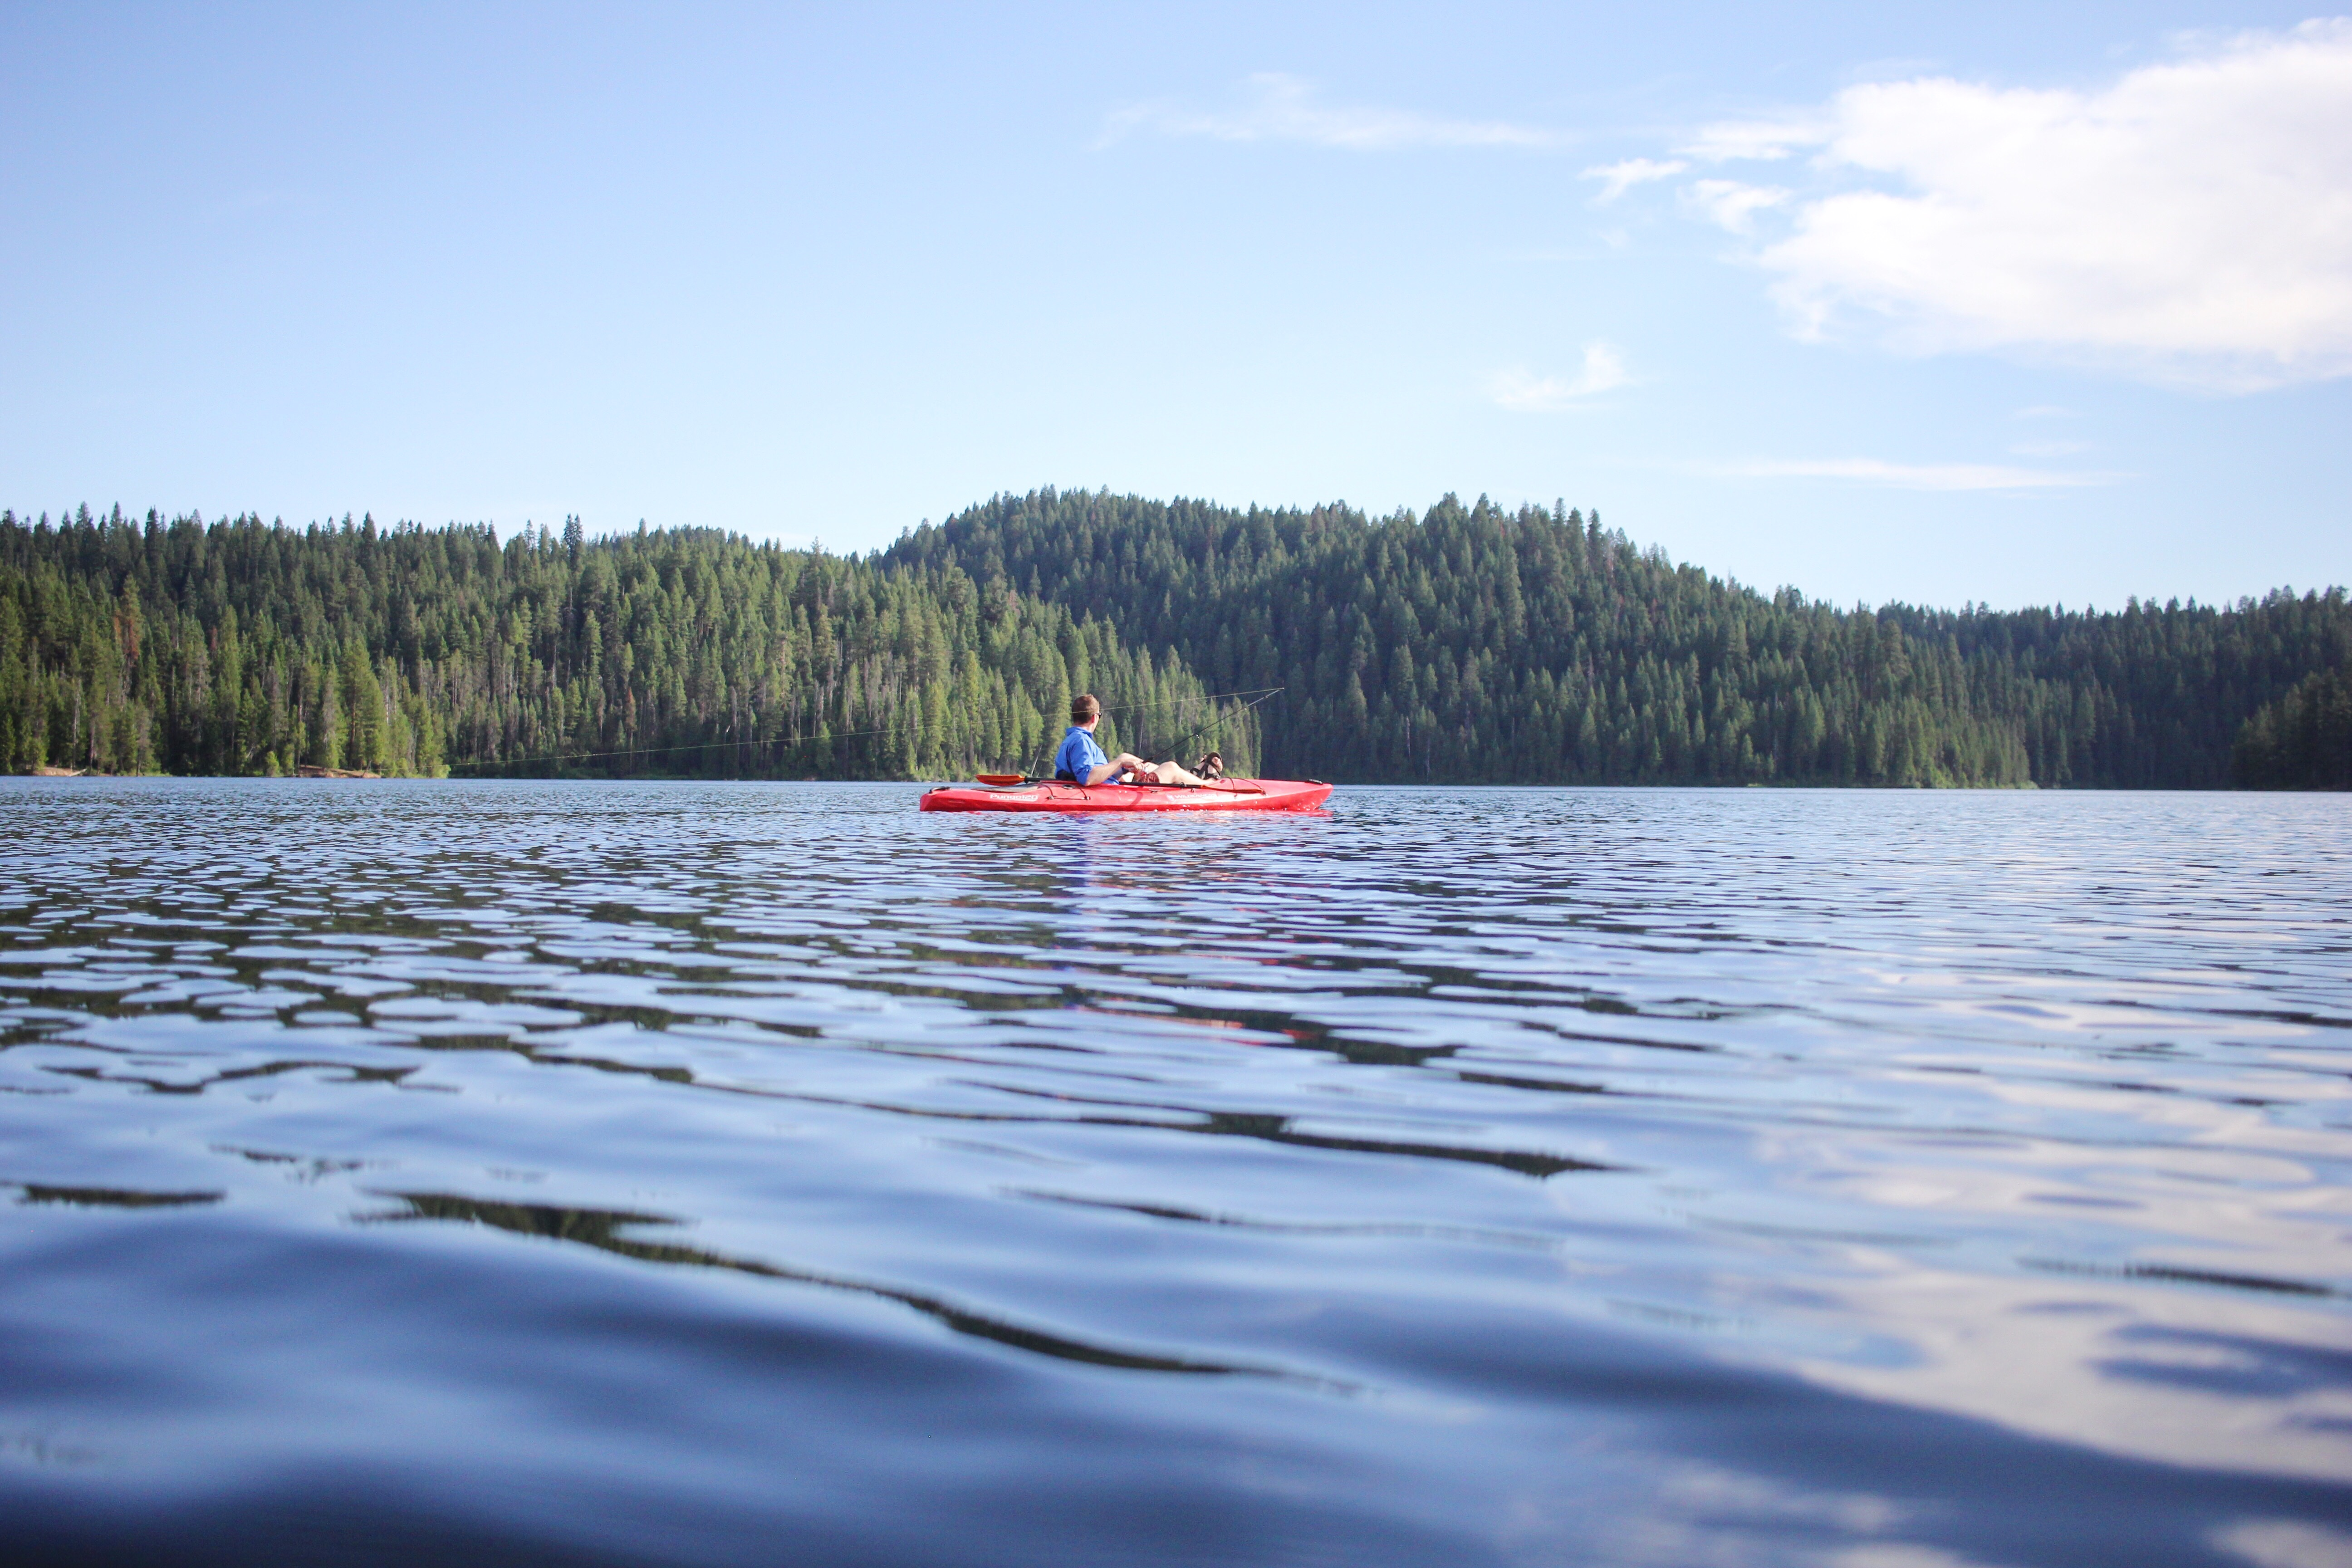 best camping spot at sagehen campground, camping with toddlers, idaho camping, sagehen reservoir, kayak fishing, wilderness systems kayak